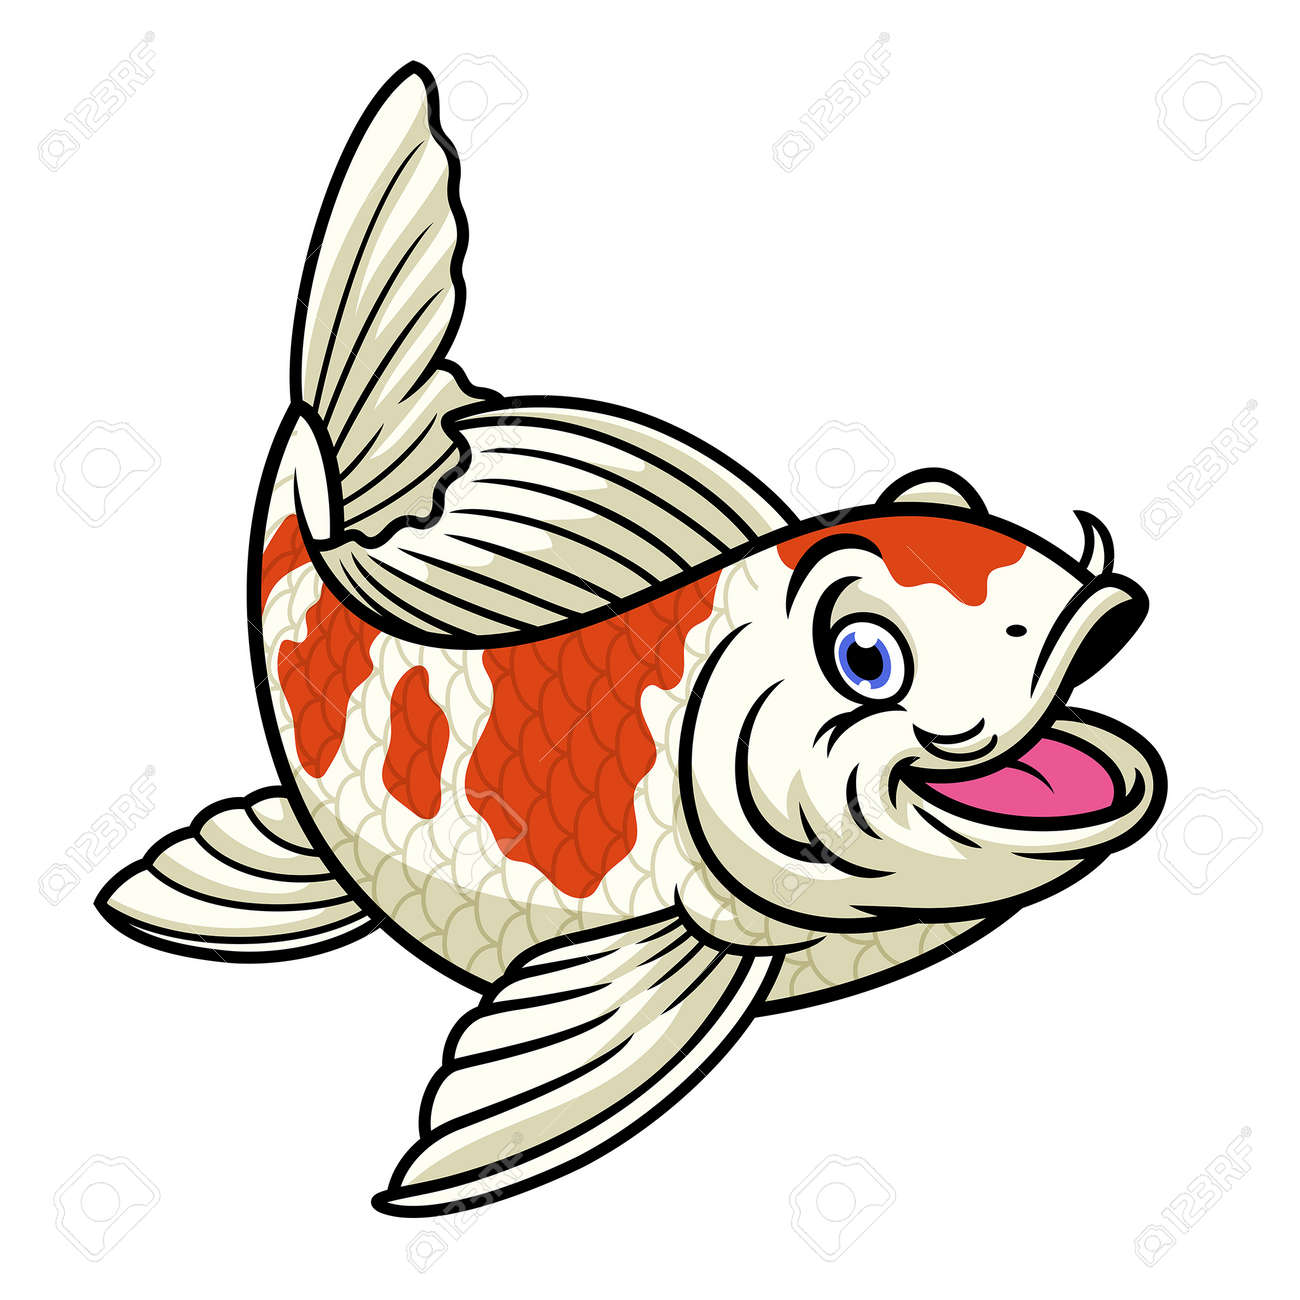 cartoon character of cute red and white koi fish - 163987826